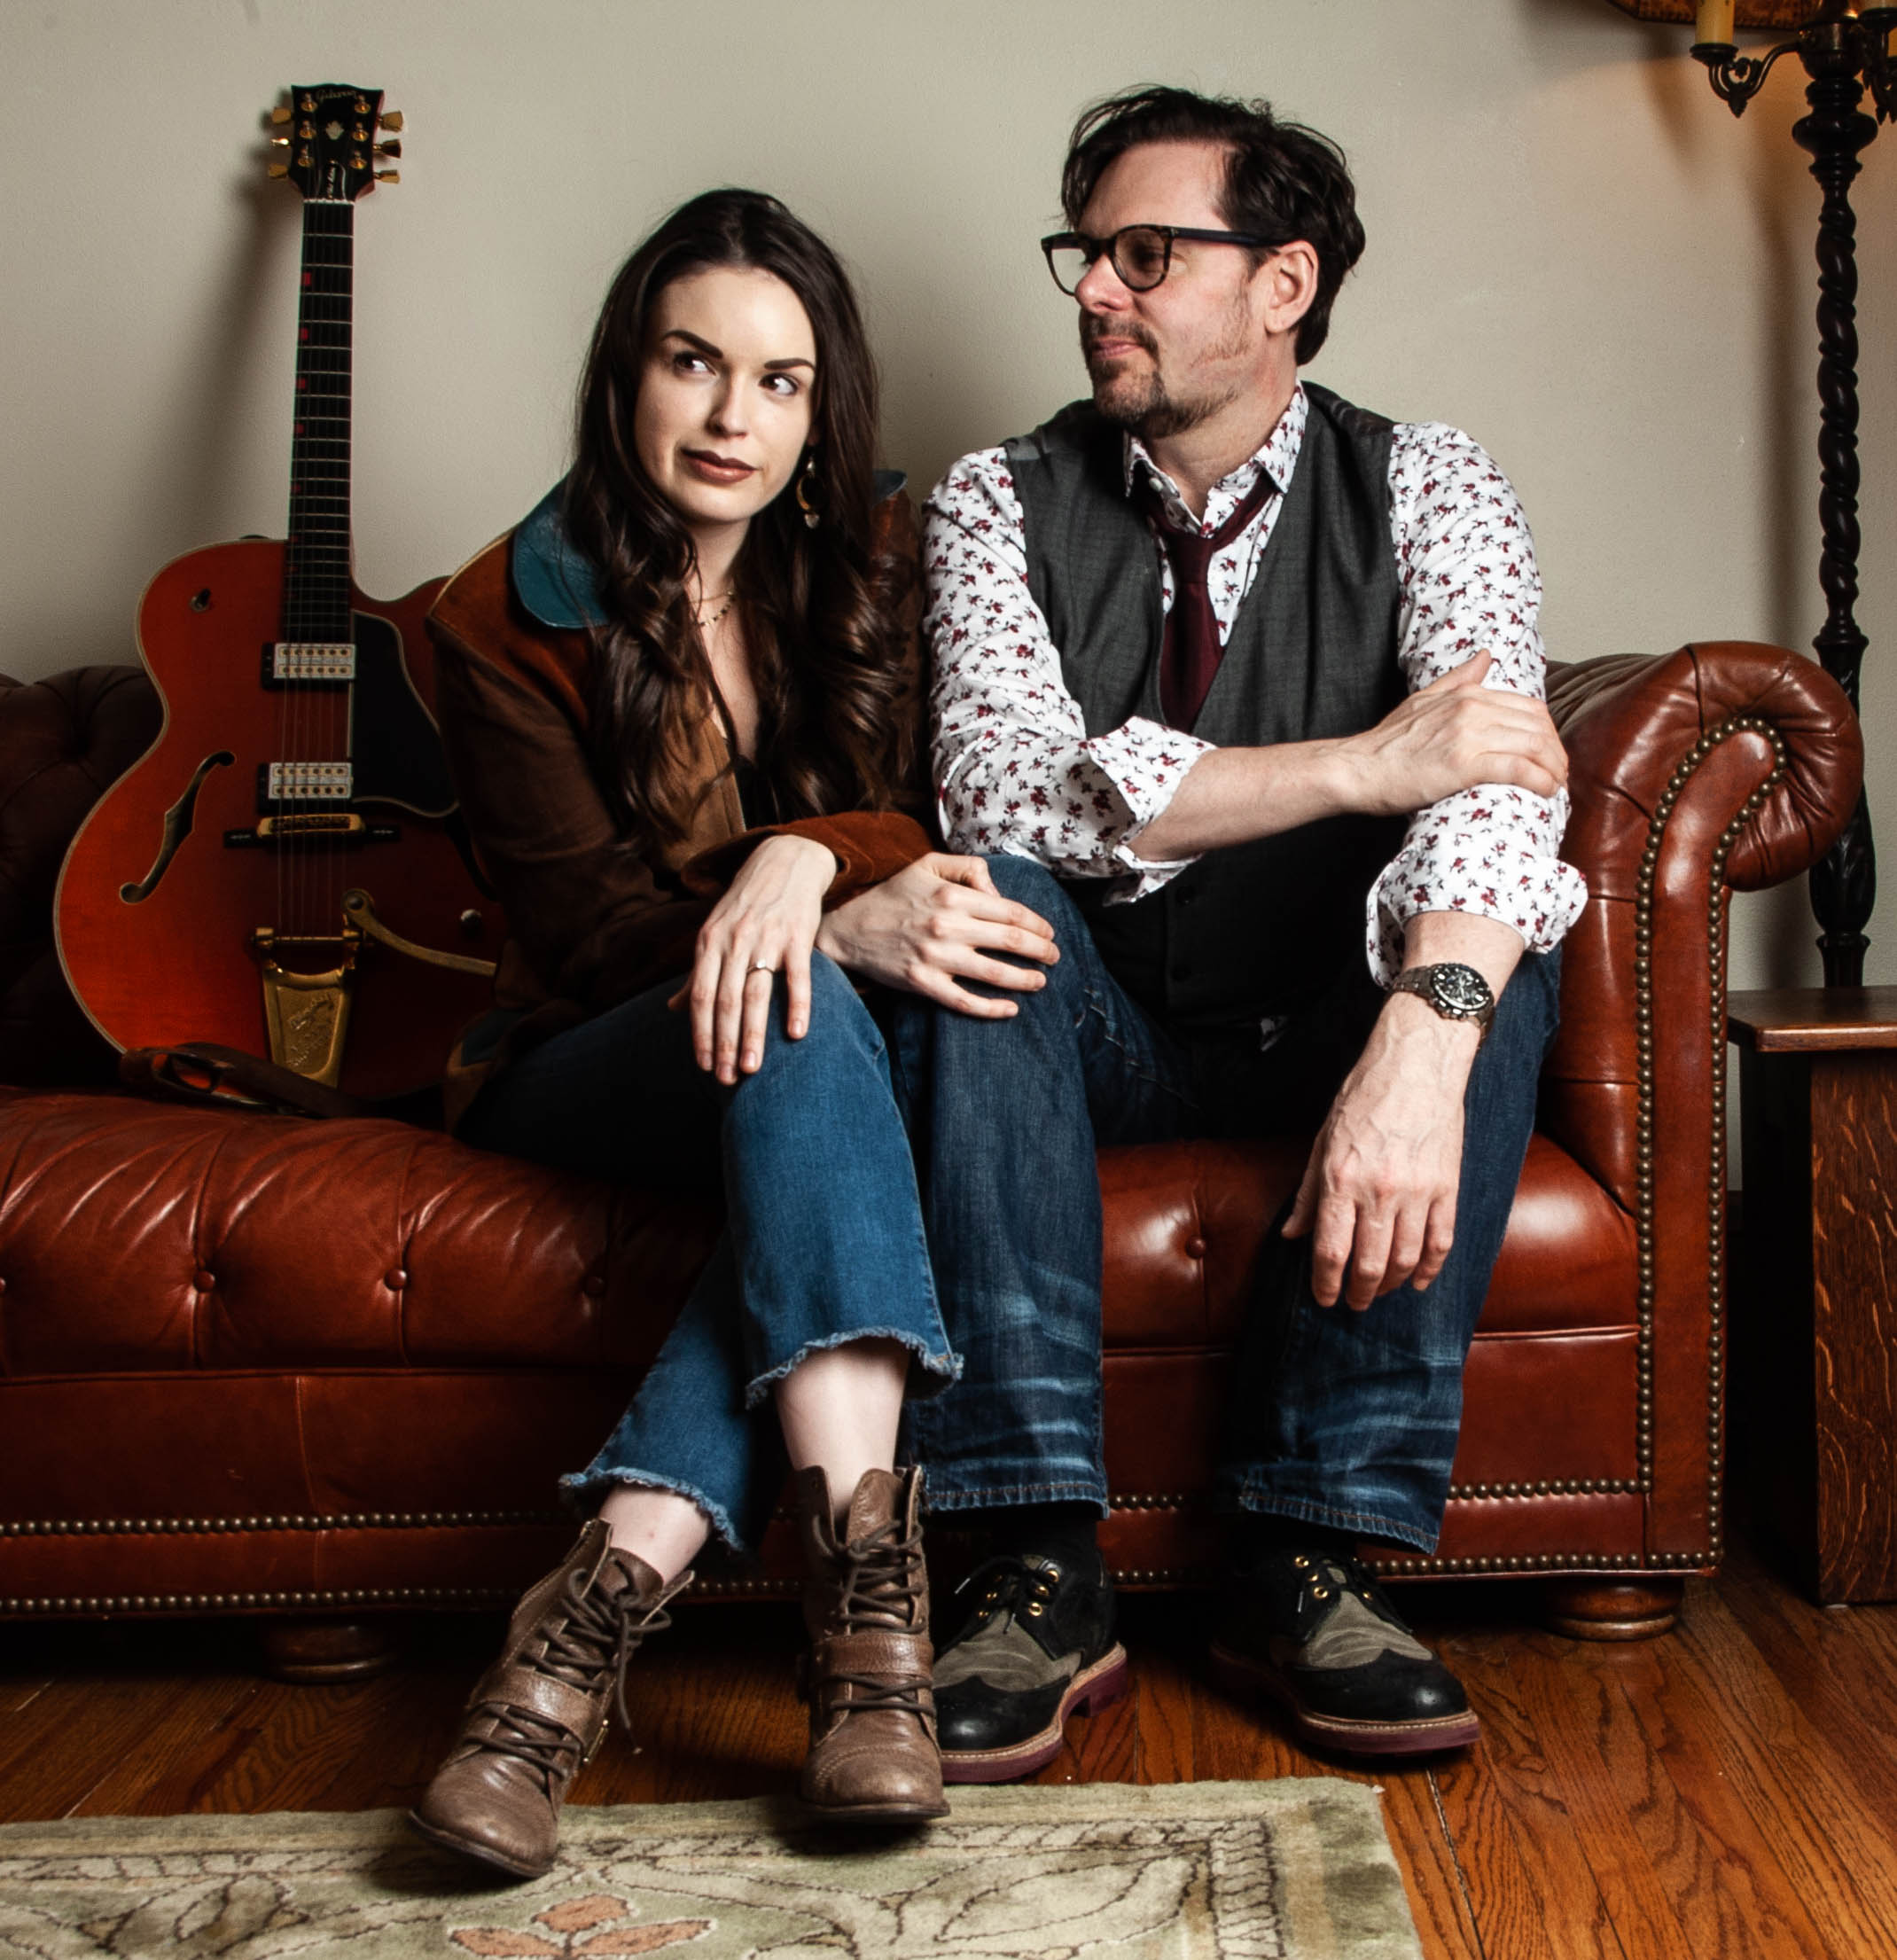 The Jorgensens Celebrate the New Orleans Music Legacy in their Brand of Americana